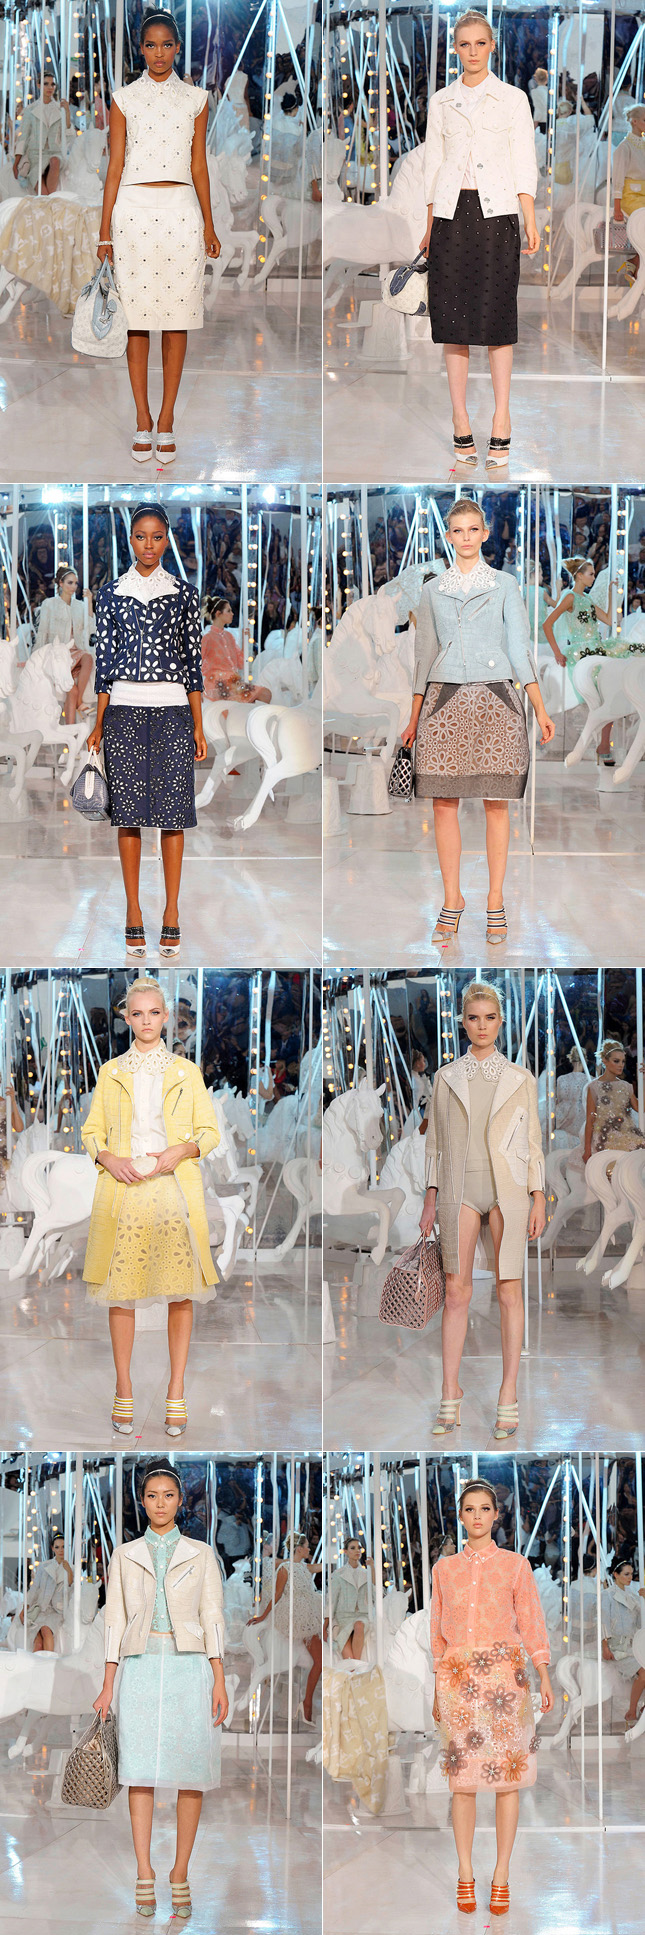 Louis Vuitton Verão 2012 Desfile Paris Fashion Week